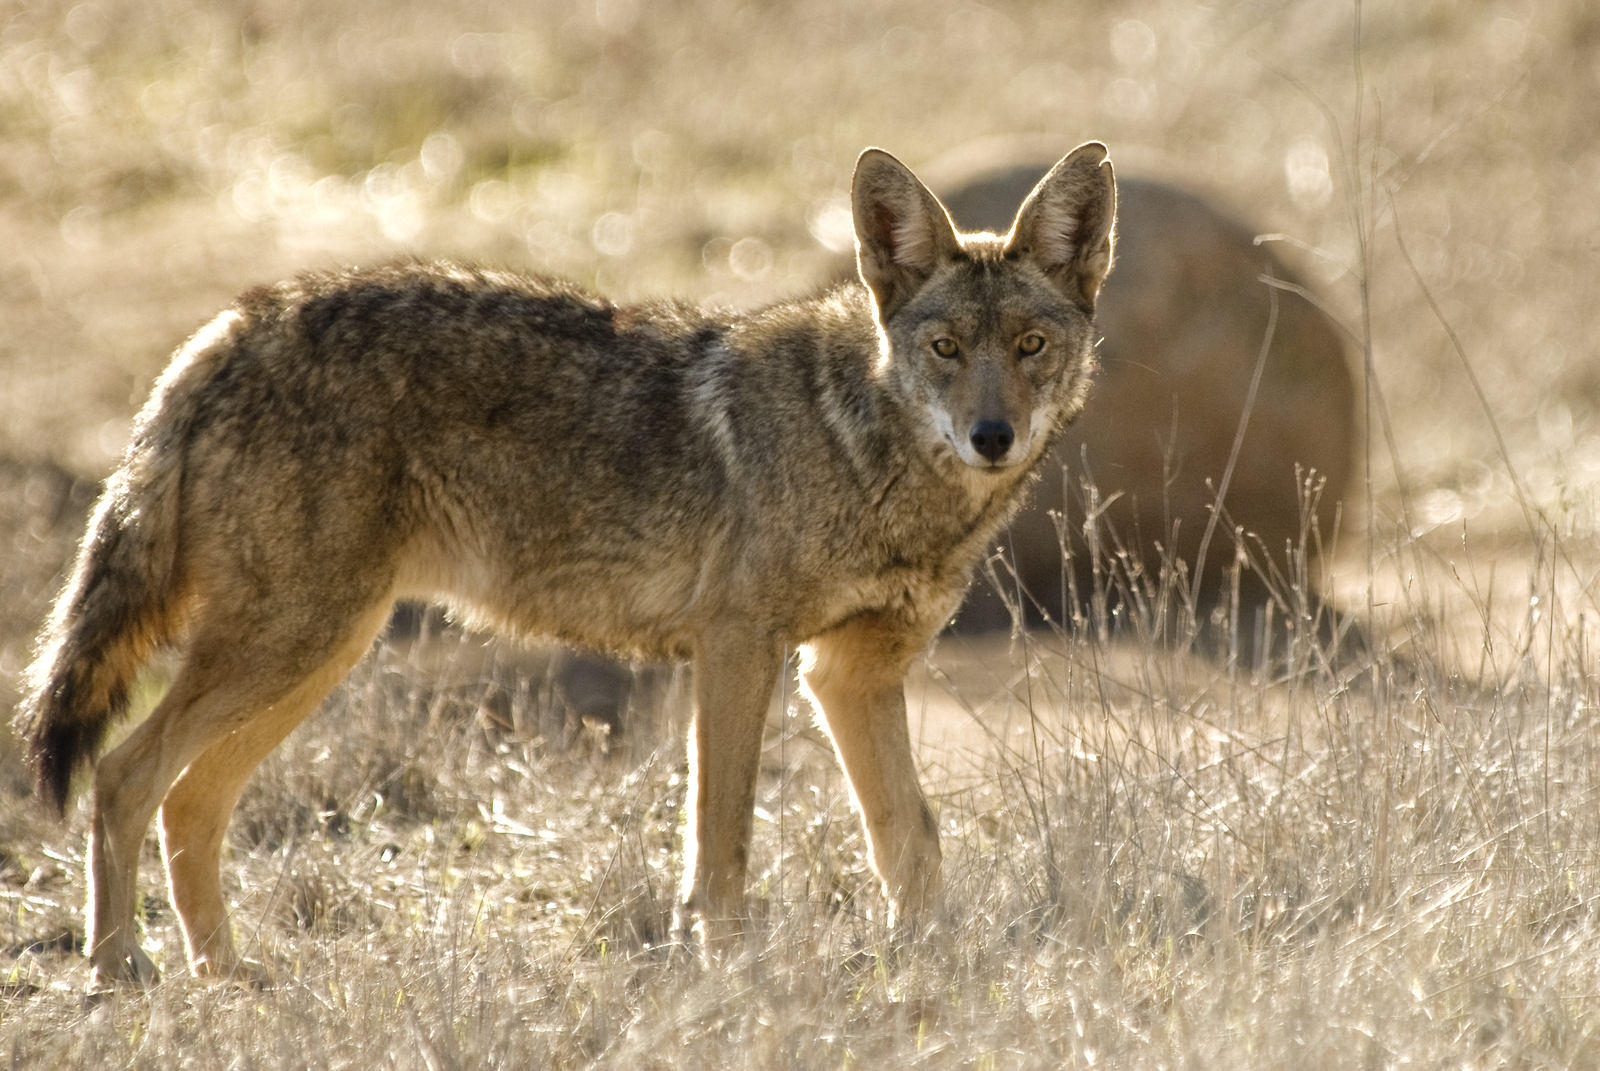 https://i1.wp.com/danthompsongamecalls.com/wp-content/uploads/2014/10/bigstock-Coyote-4186001.jpg